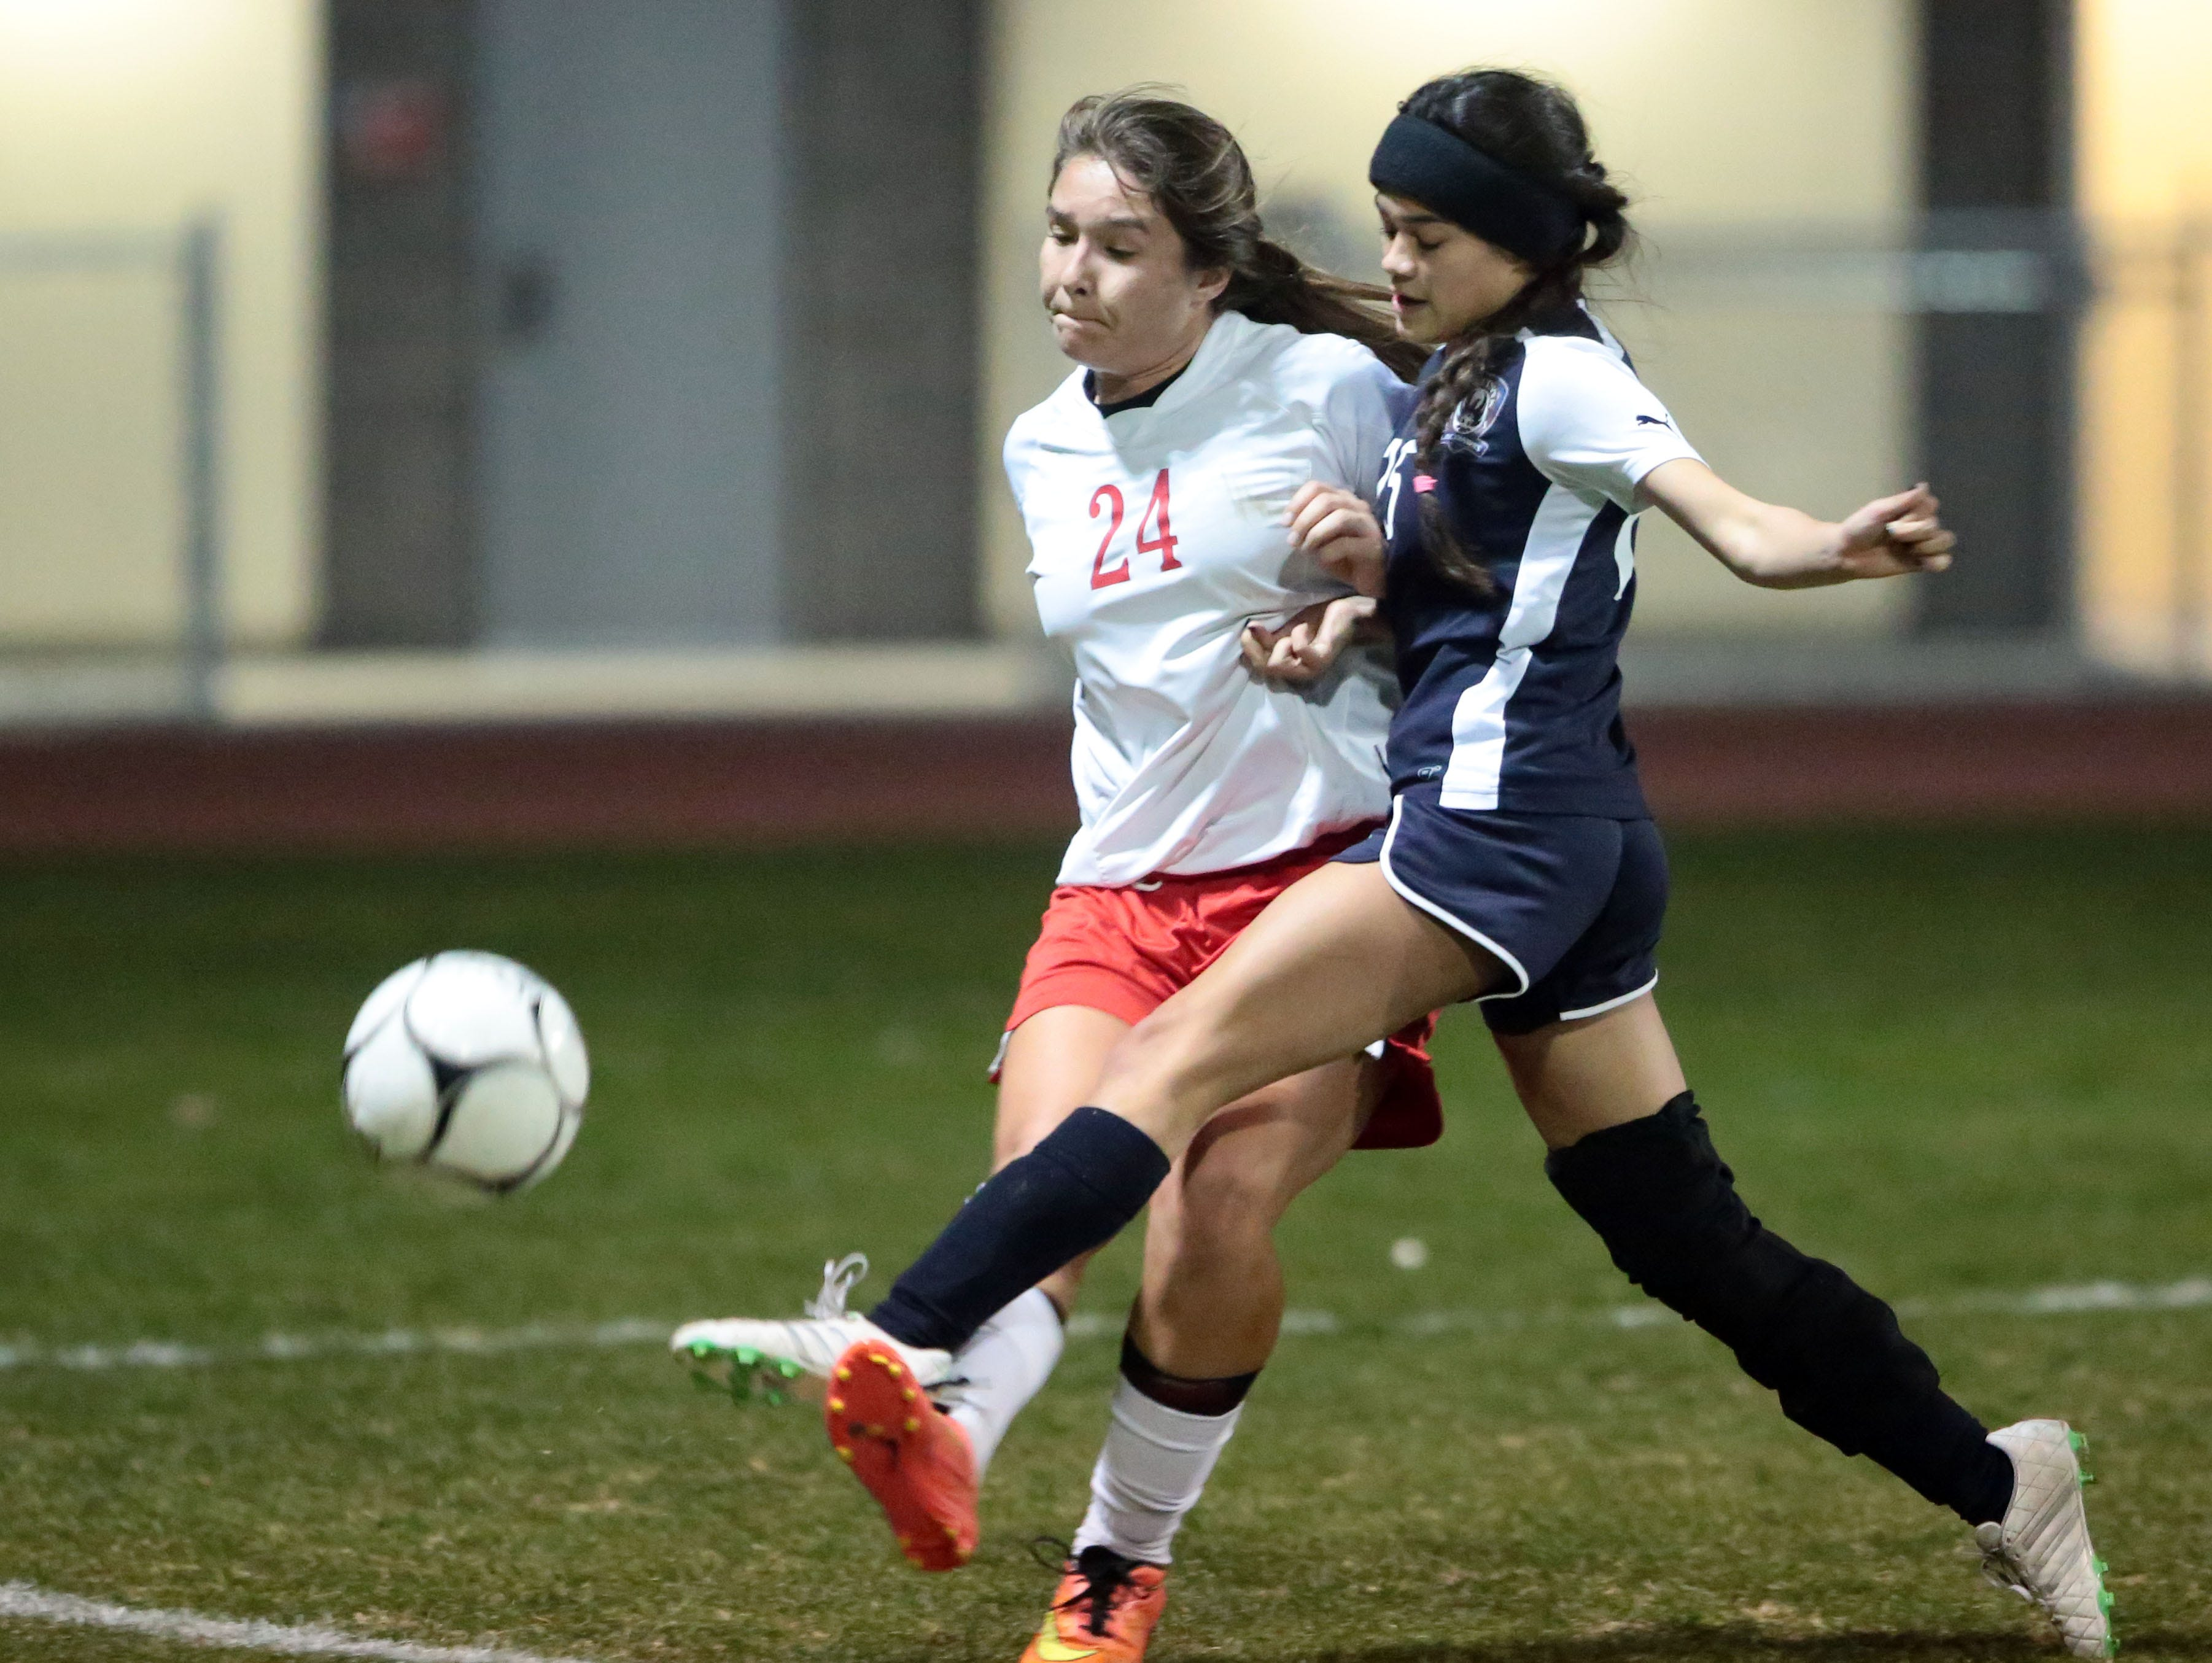 La Quinta girls' soccer rebounds with consecutive wins  USA Today High Schoo...